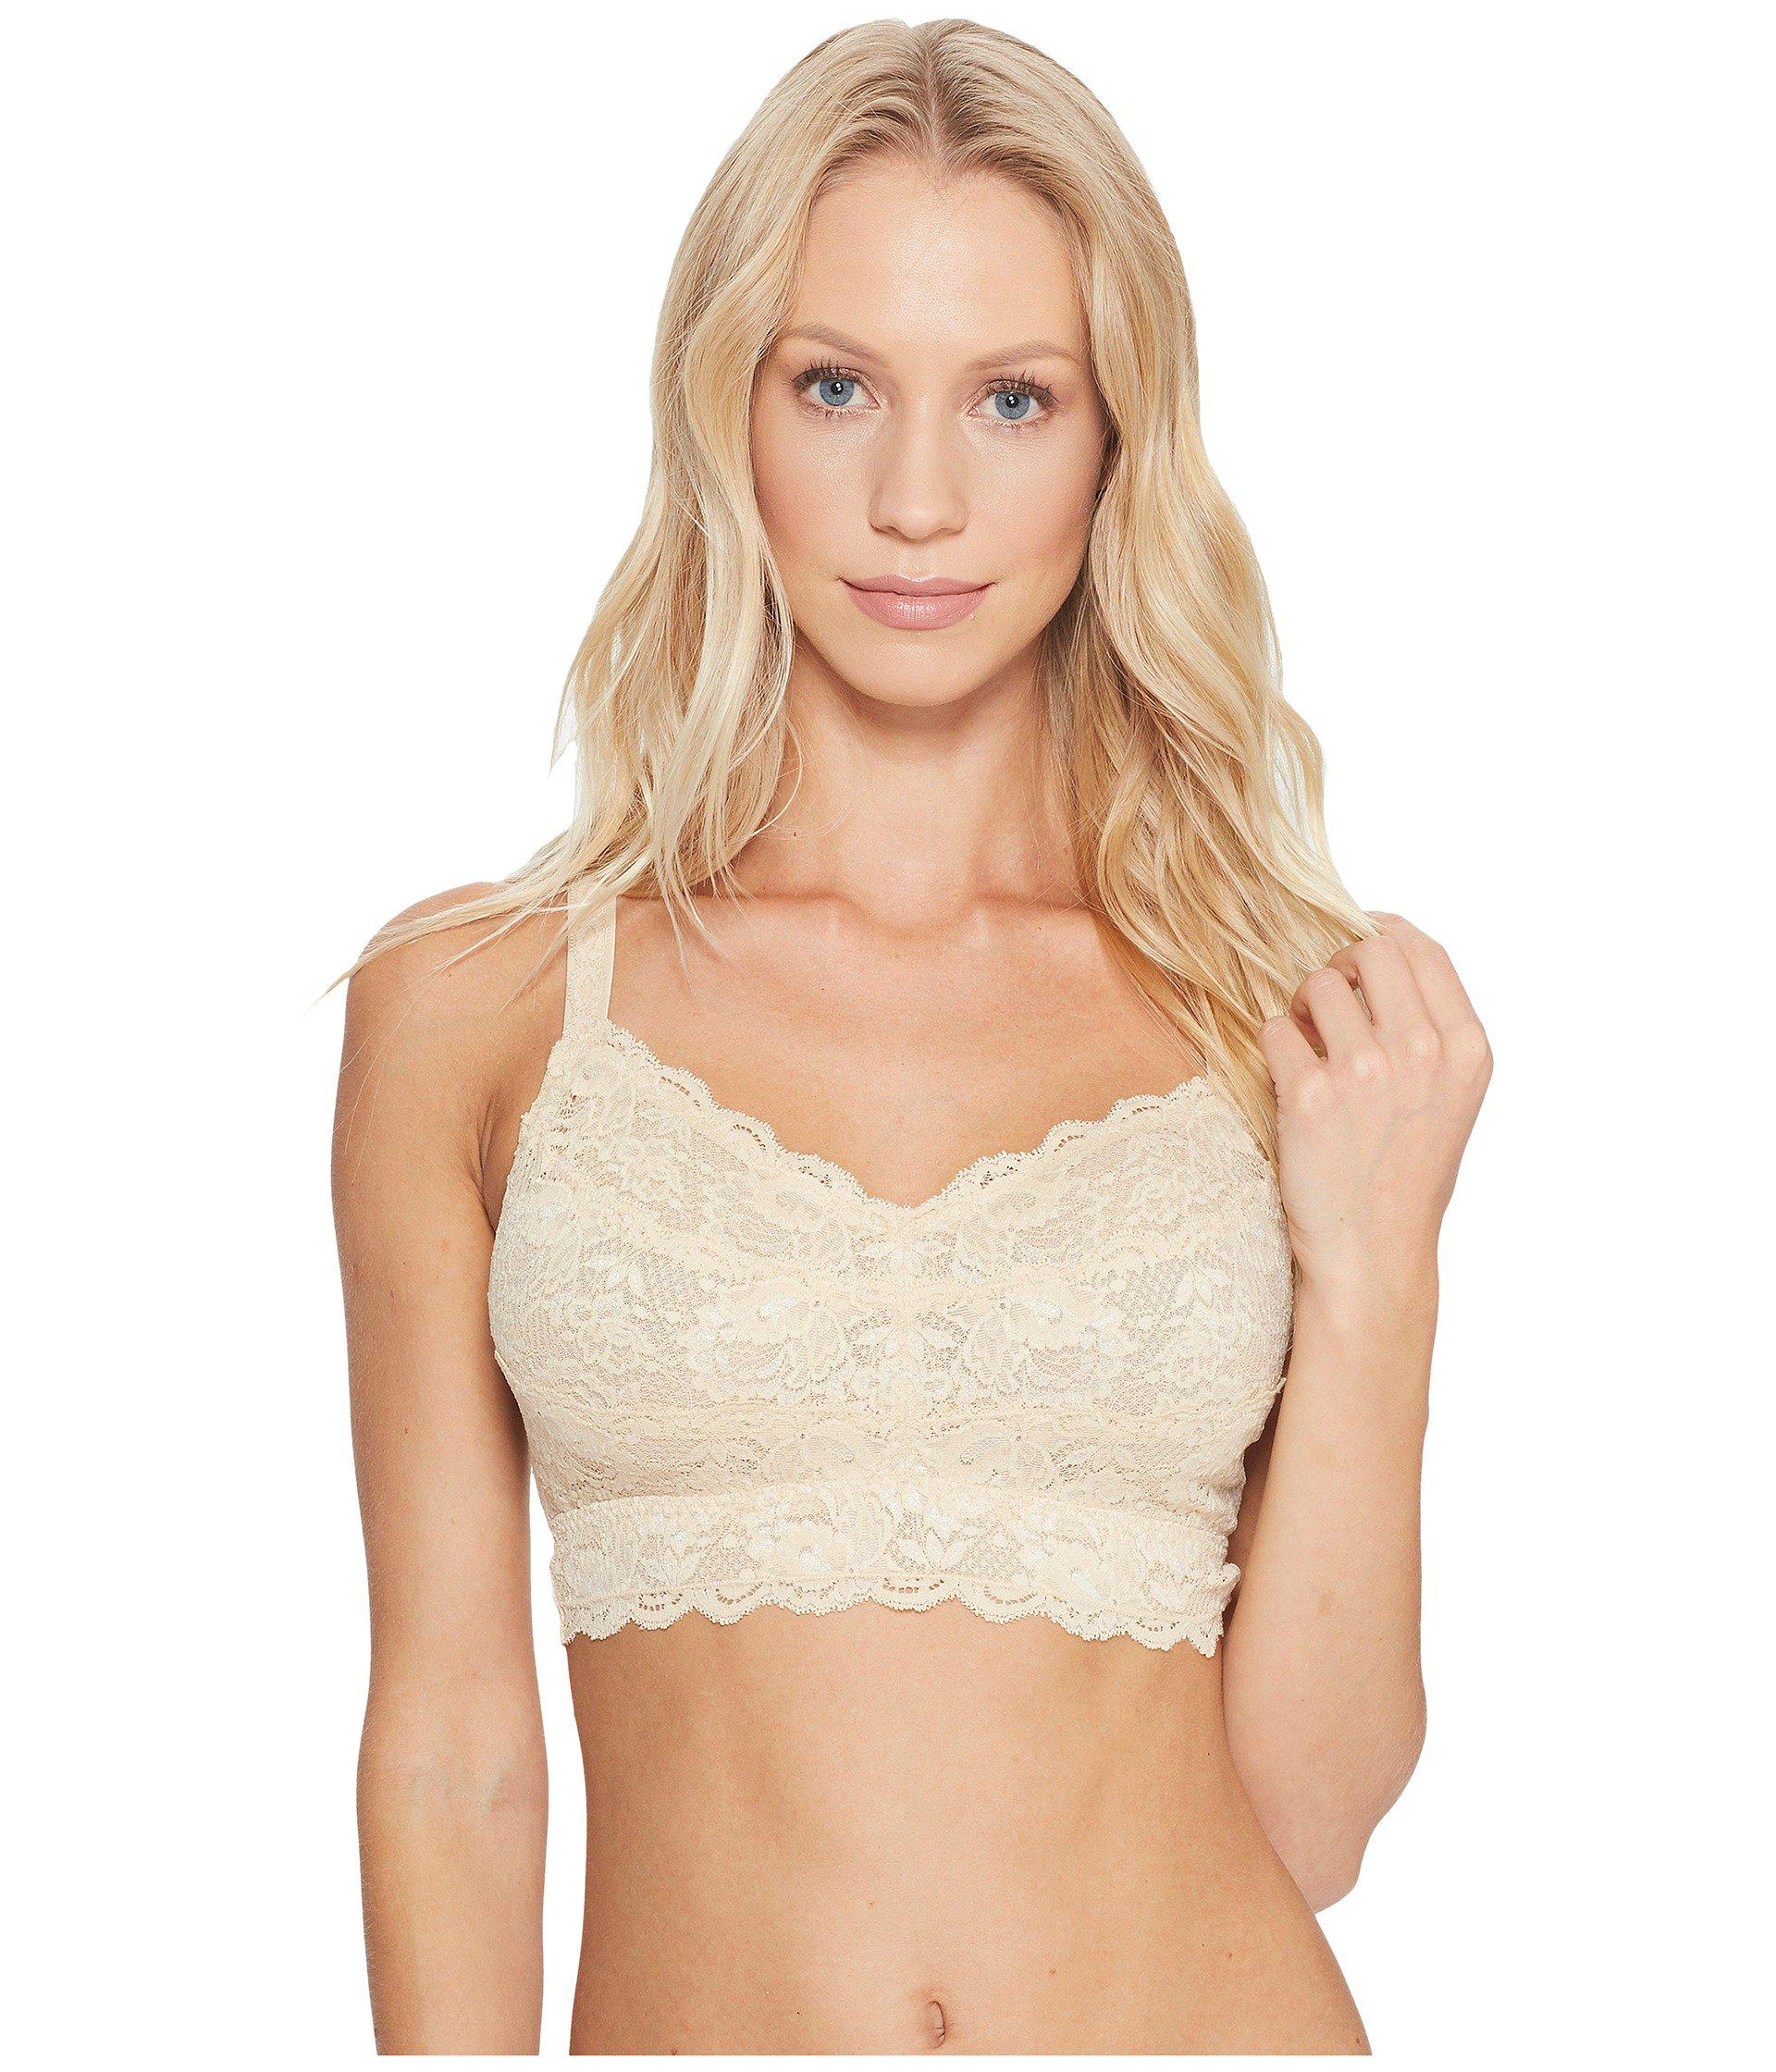 3efdac17428f1 Lyst - Cosabella Never Say Never Curvy Soft Bra Sweetie Never1310 ...